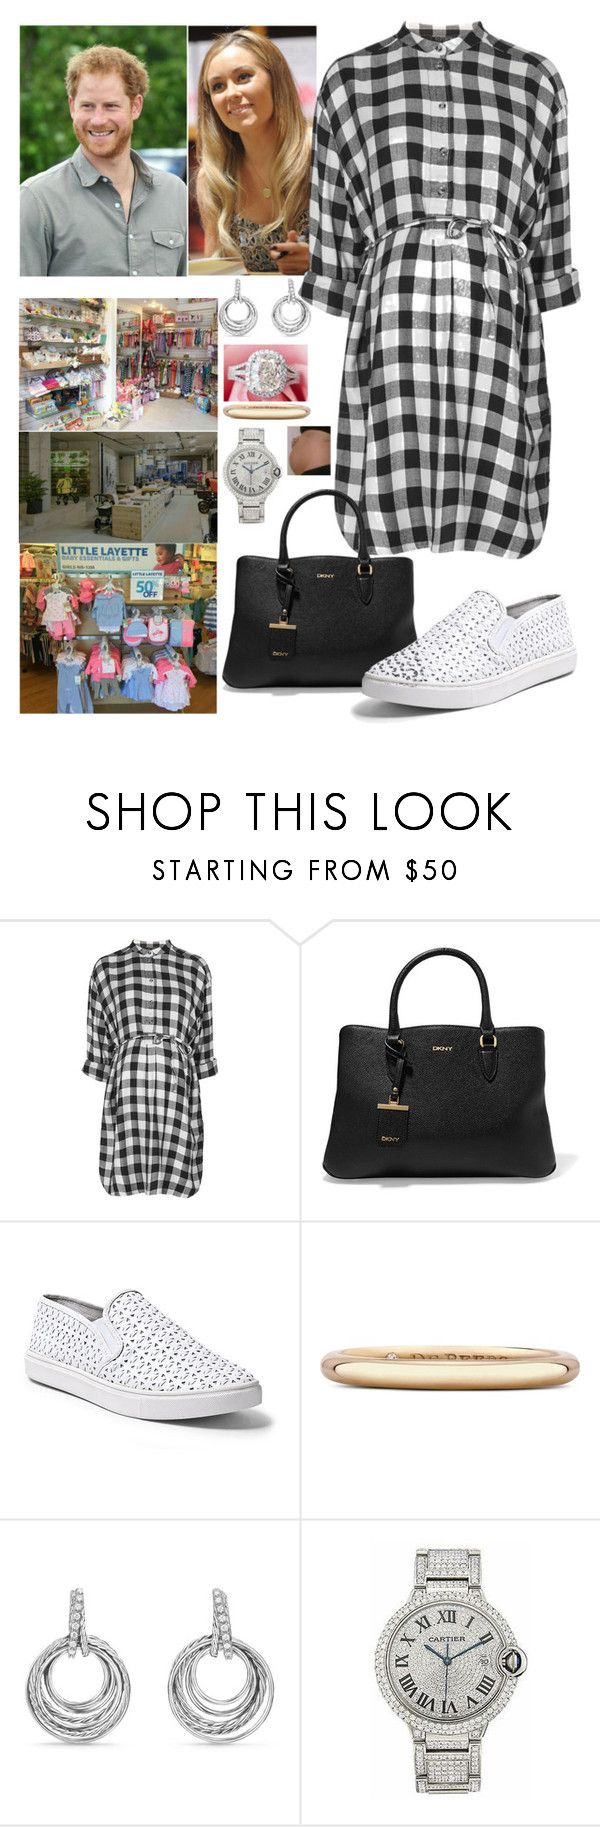 """""""Lauren and Harry going shopping layette for their baby"""" by royal-431 ❤ liked on Polyvore featuring Lauren Conrad, Topshop, DKNY, Steve Madden, De Beers, David Yurman and Cartier"""